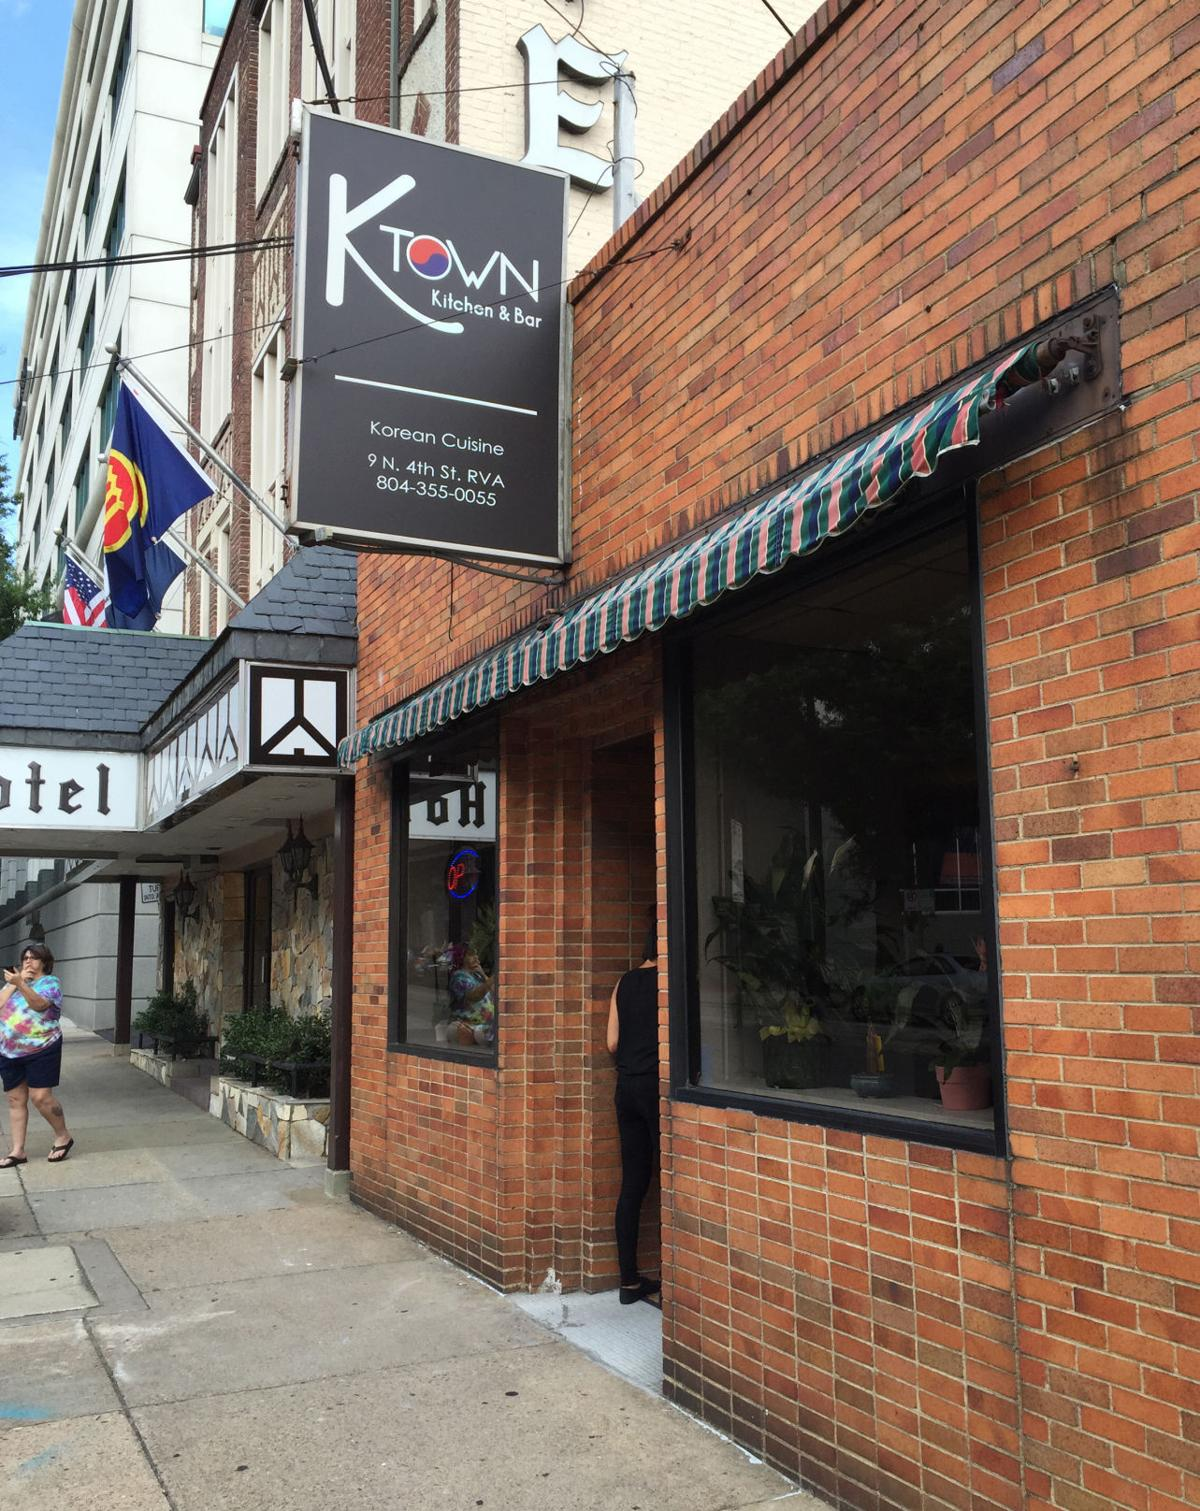 k-town kitchen and bar is now open on 4th st. in downtown richmond